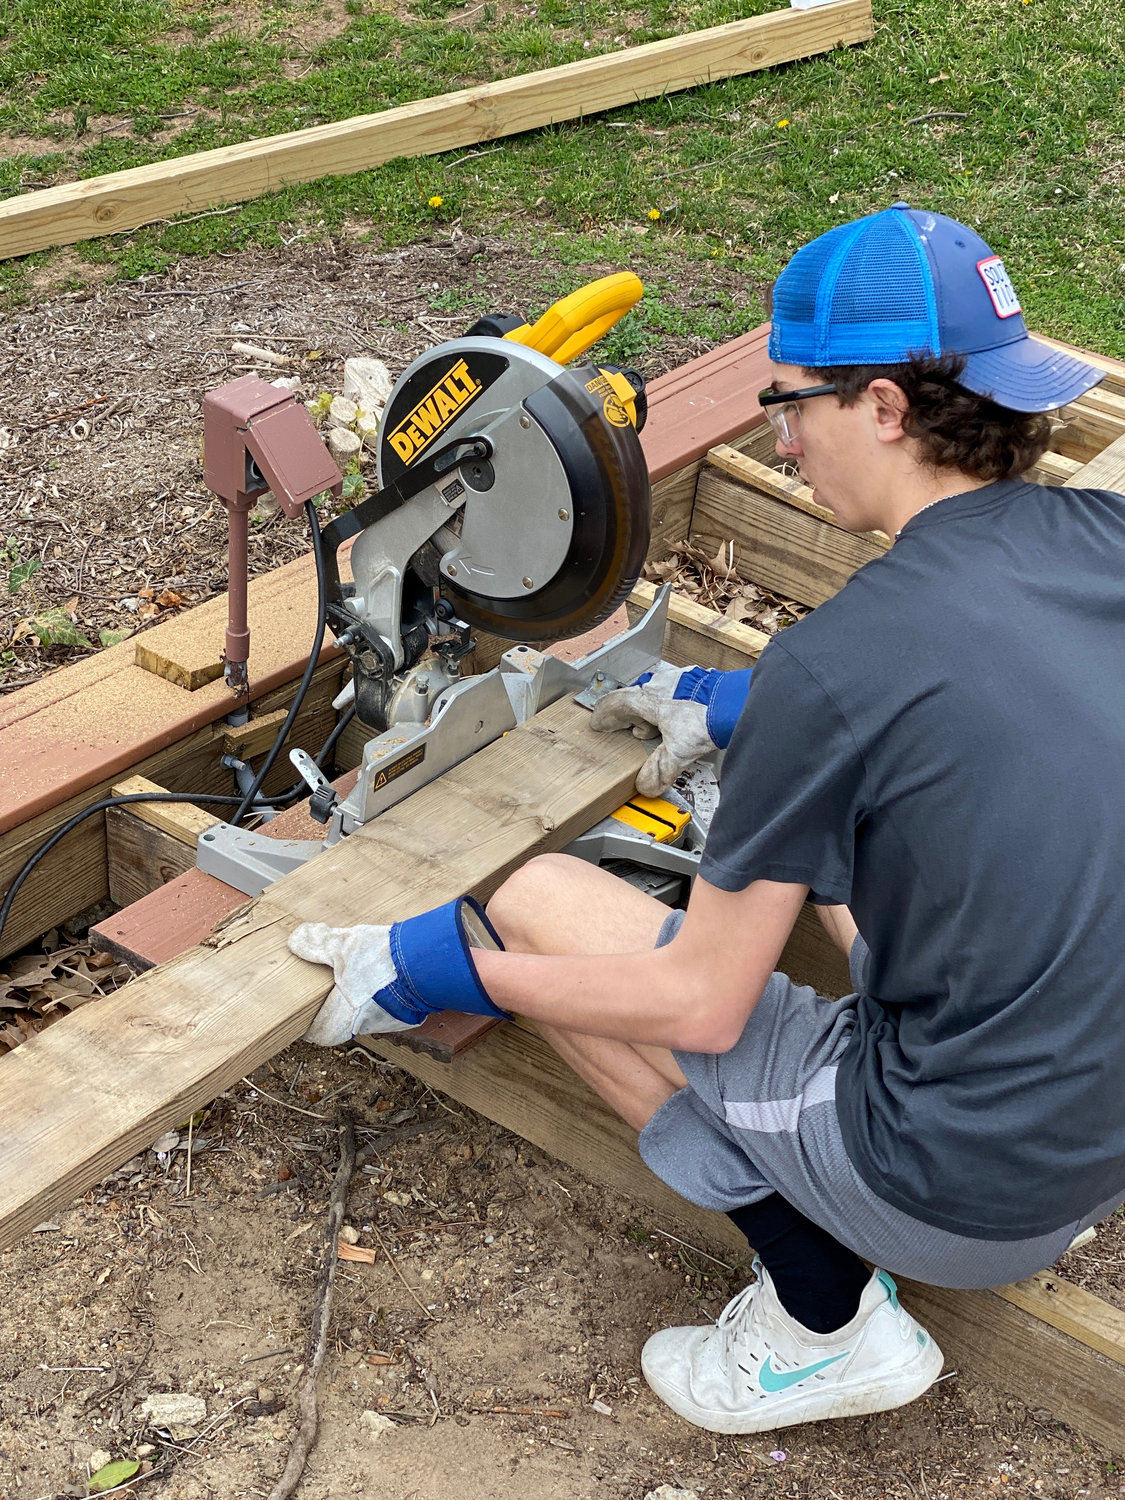 Without baseball practice every day, Archbishop Spalding senior pitcher Nick Schepens has been filling the time building garden beds as gifts for his neighbors.